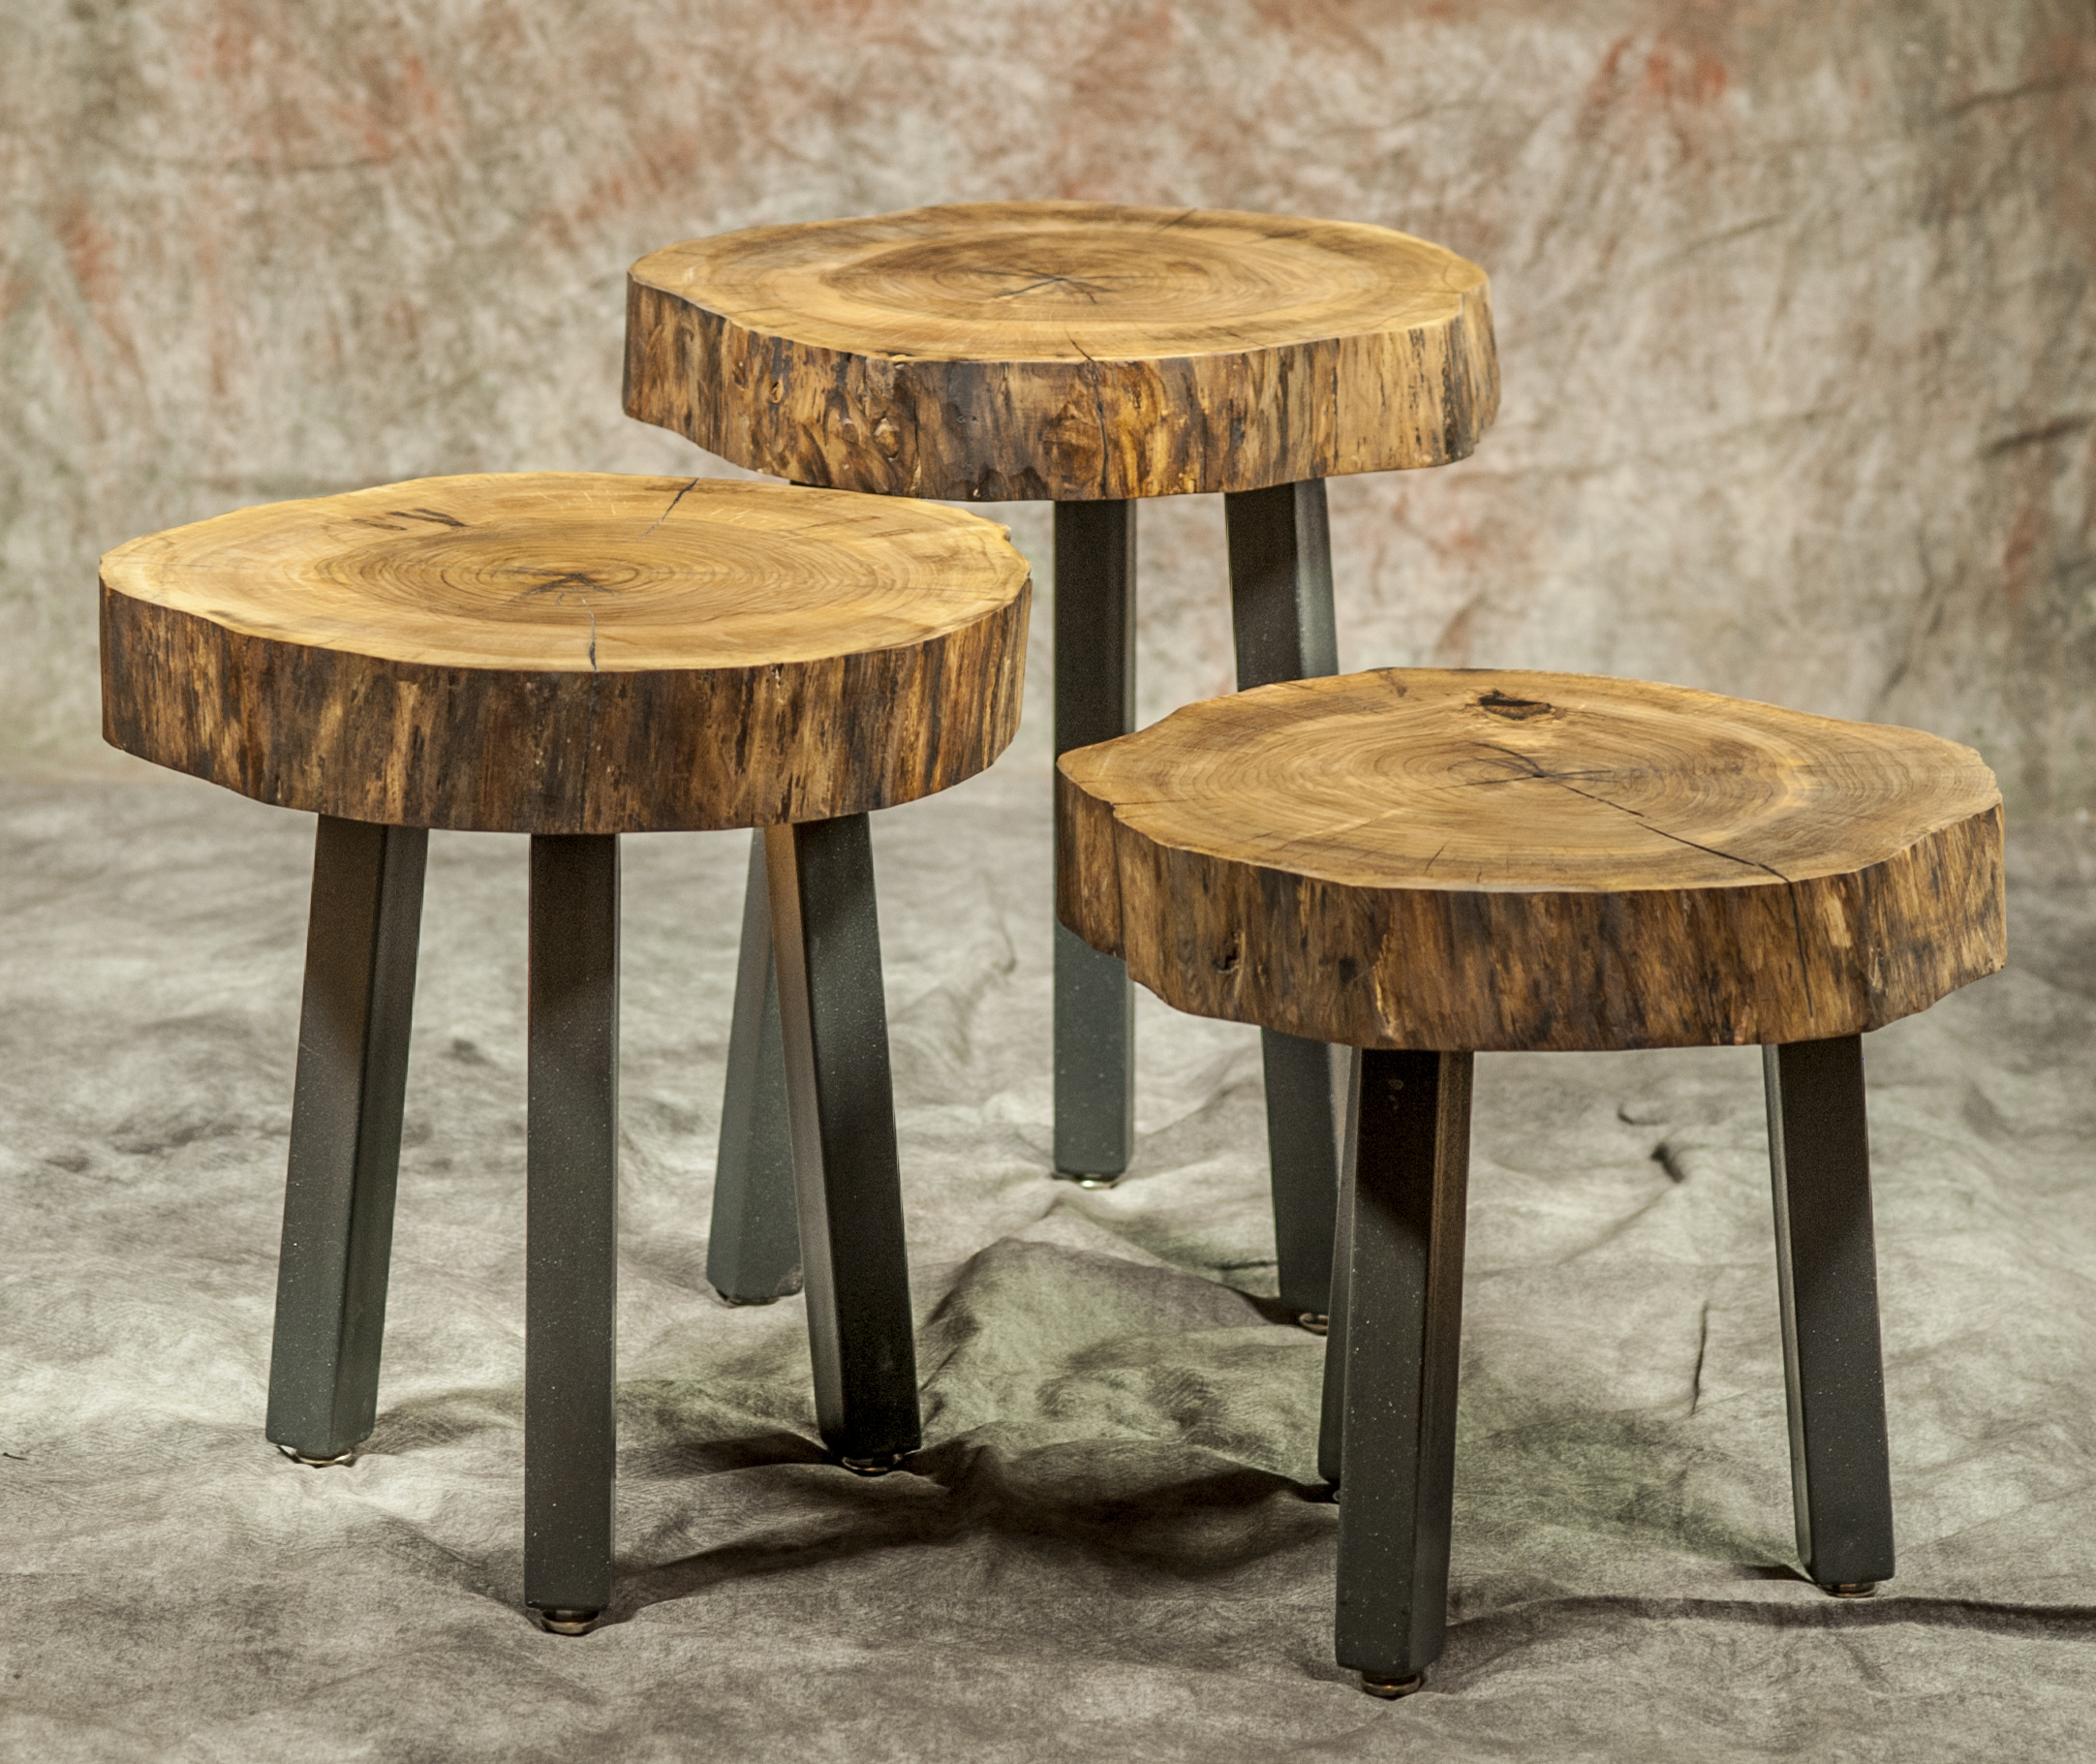 Custom Handmade Set Of Tea Tables - Artumwood